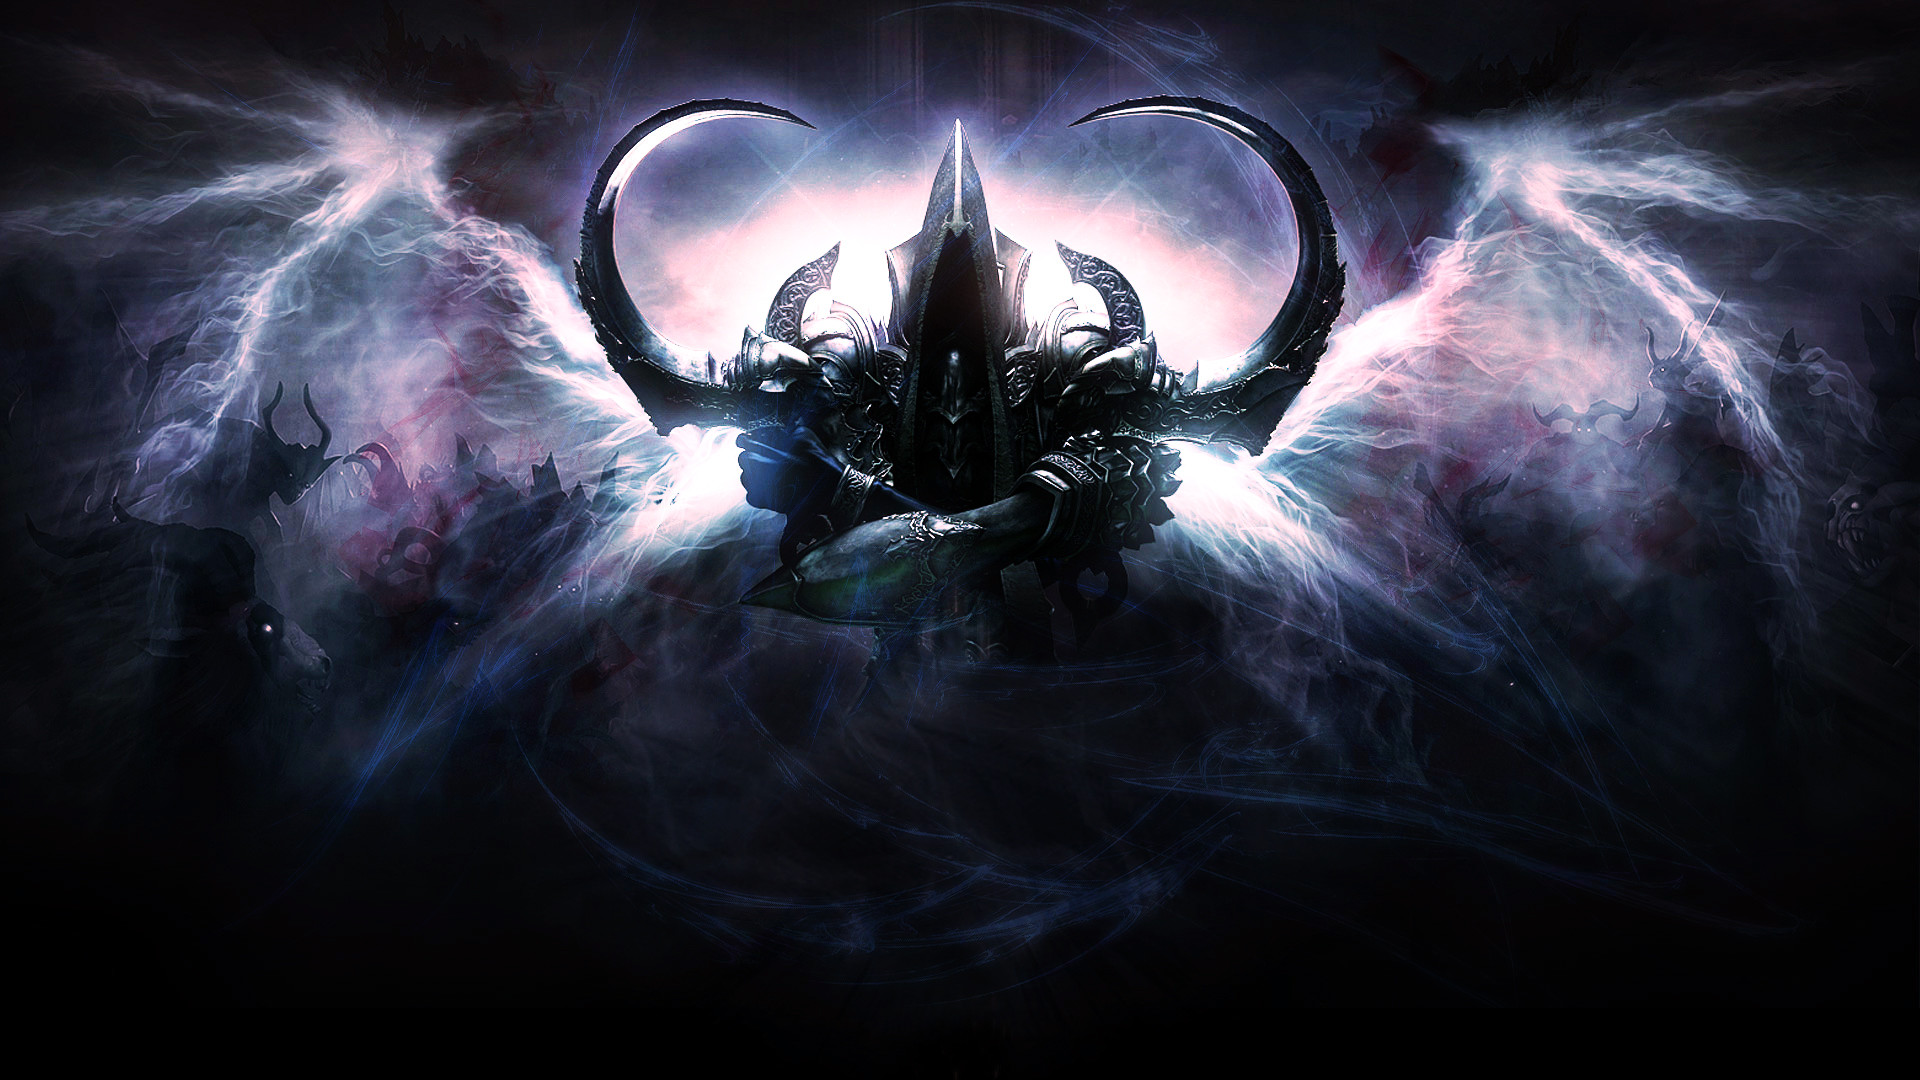 1920x1080 annaluci 147 12 Diablo 3 - Reaper of Souls Wallpaper by NIHILUSDESIGNS